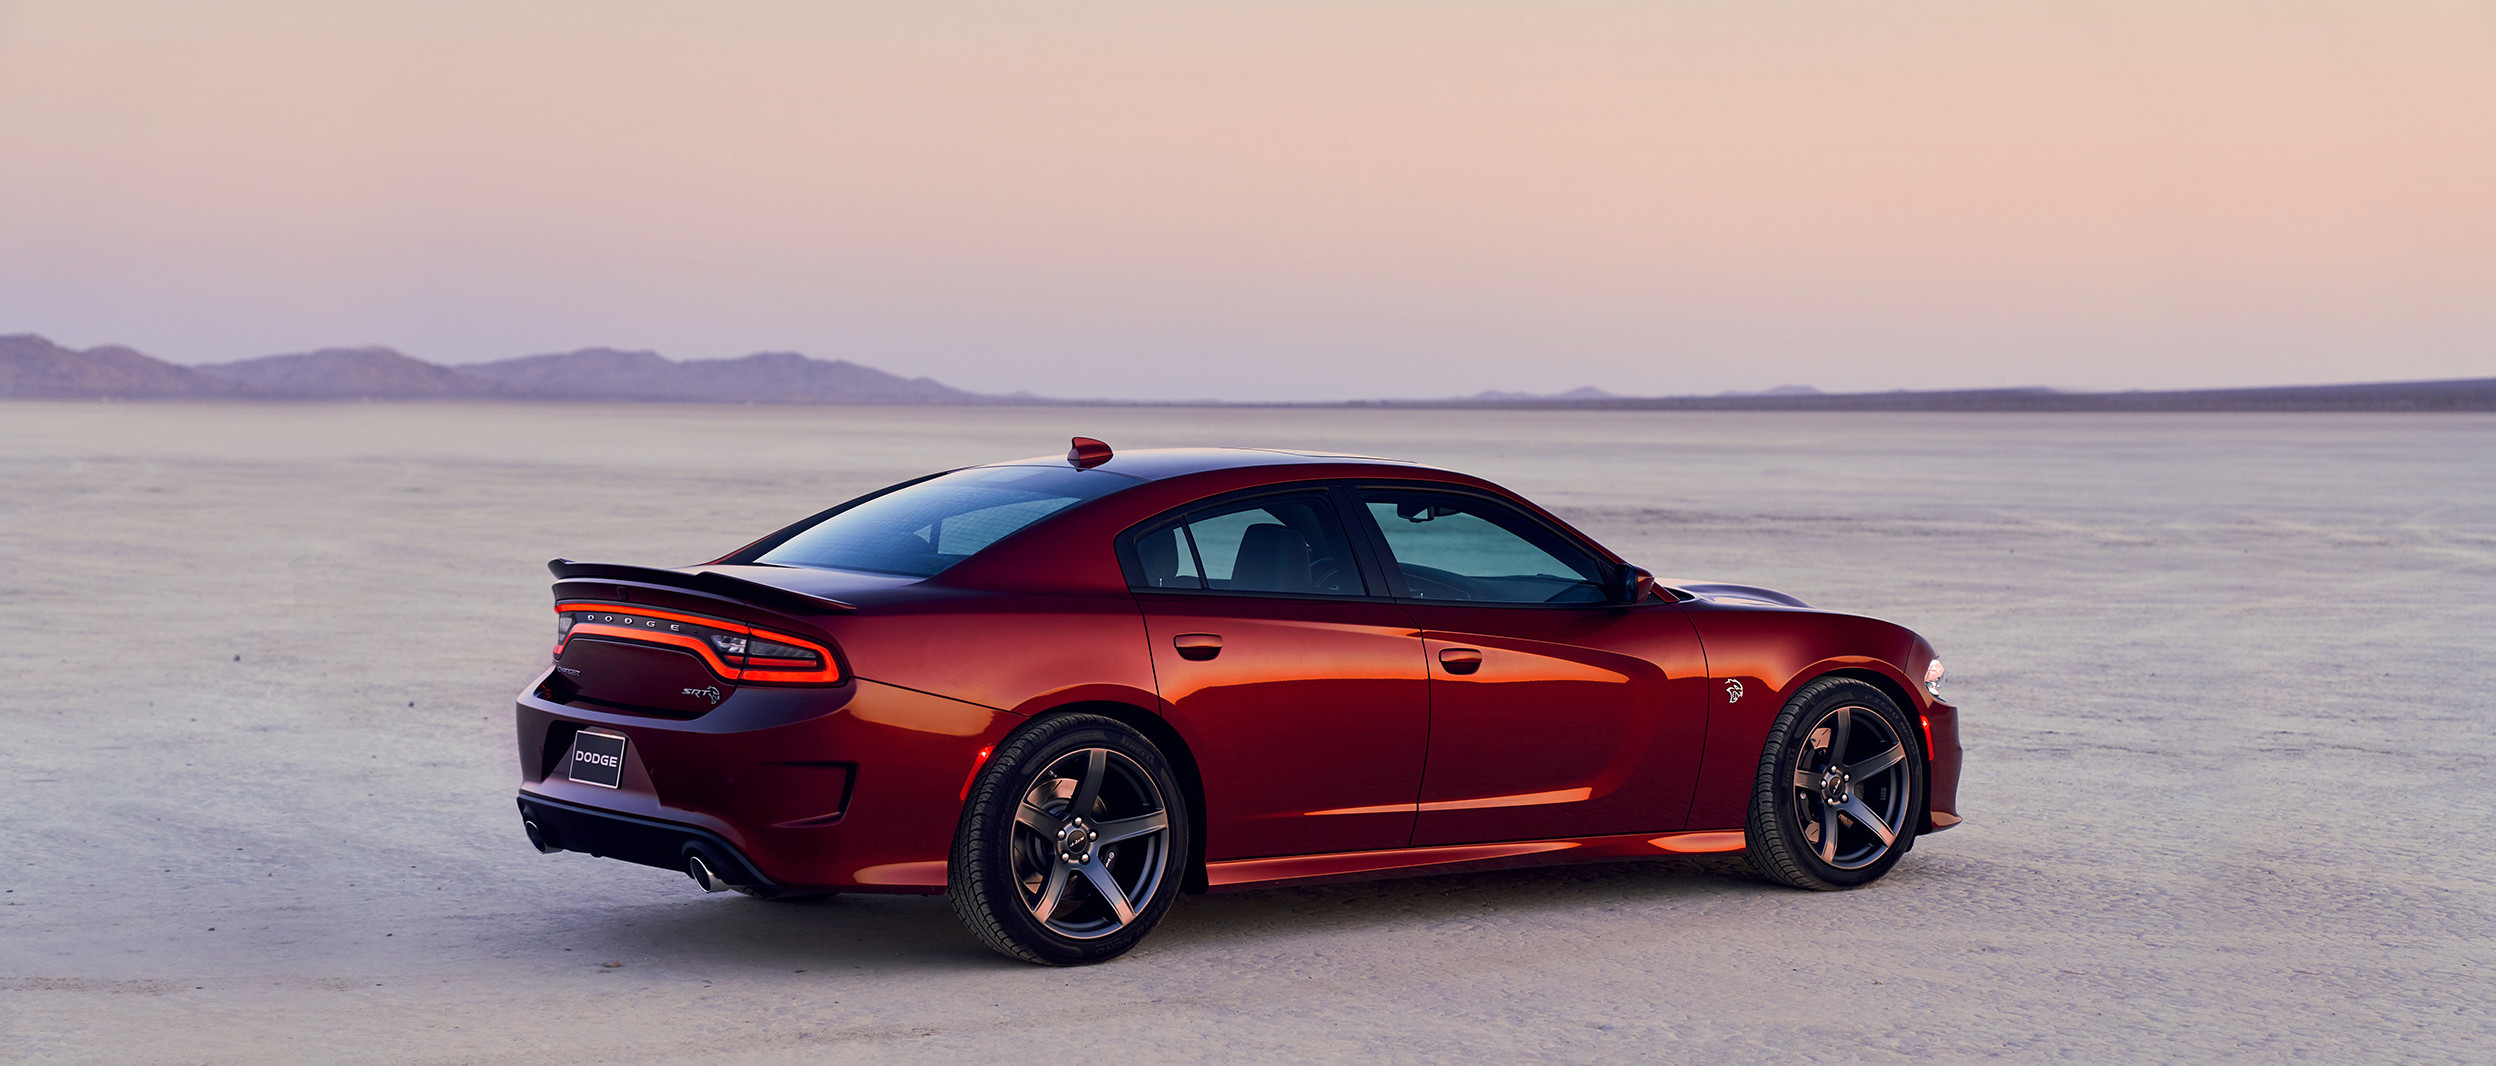 2019 Dodge Charger | Dodge Canada